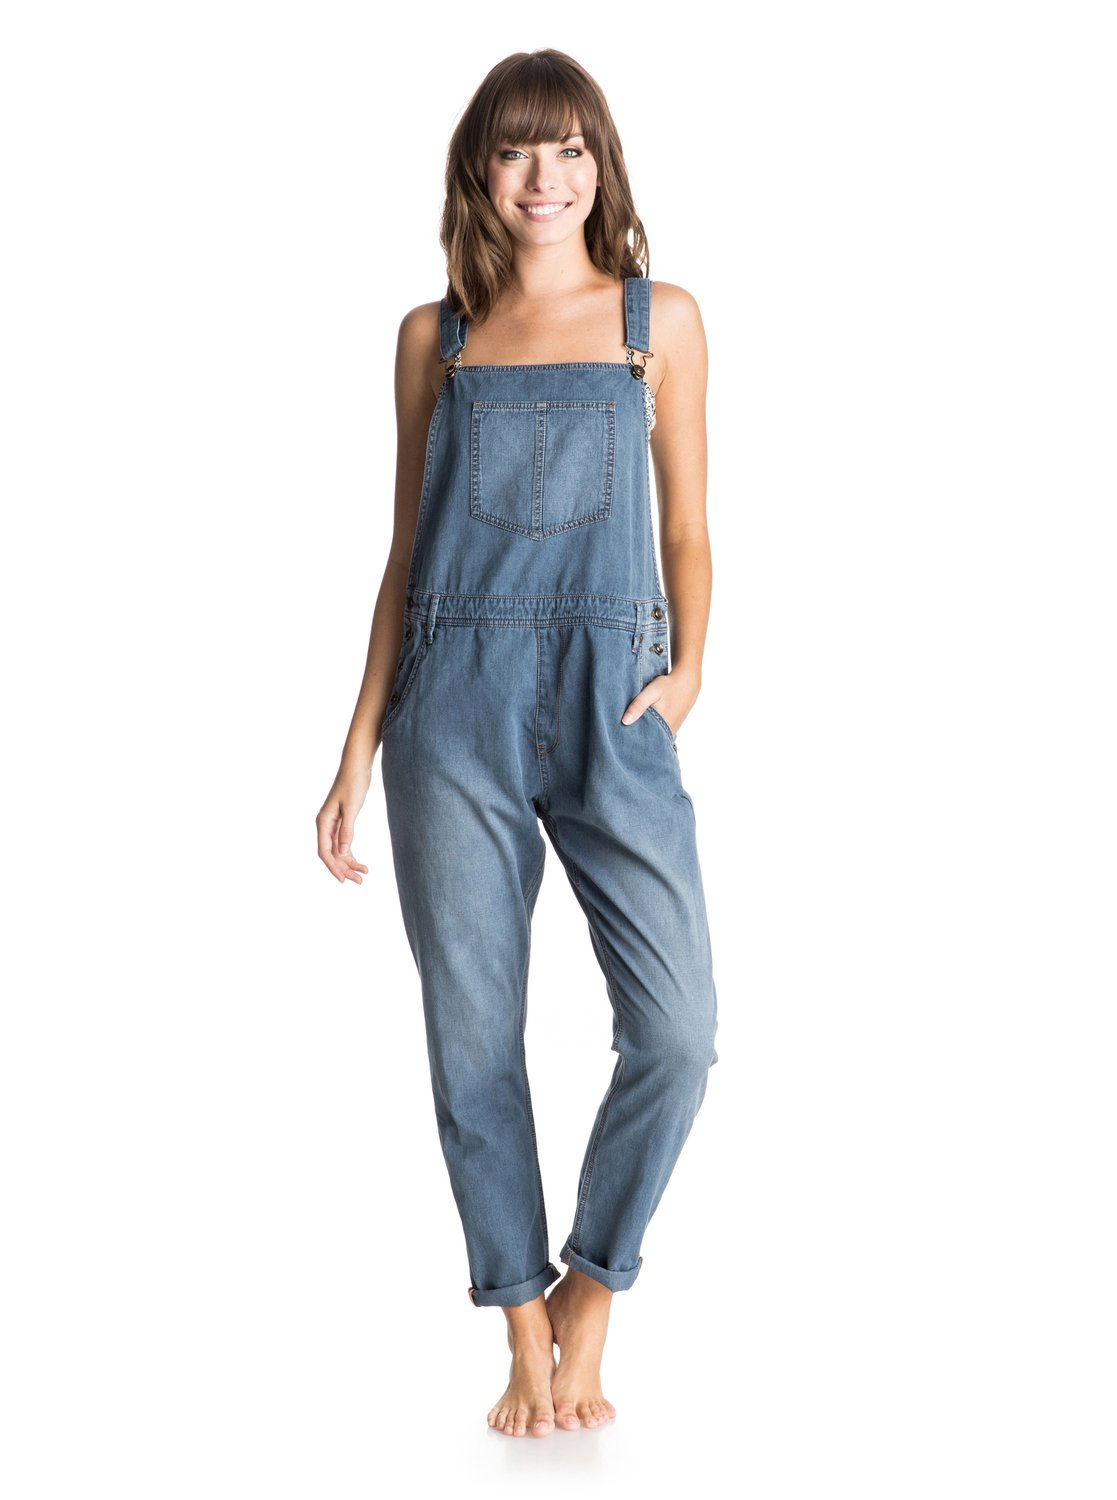 Women's Sea Foam Overalls